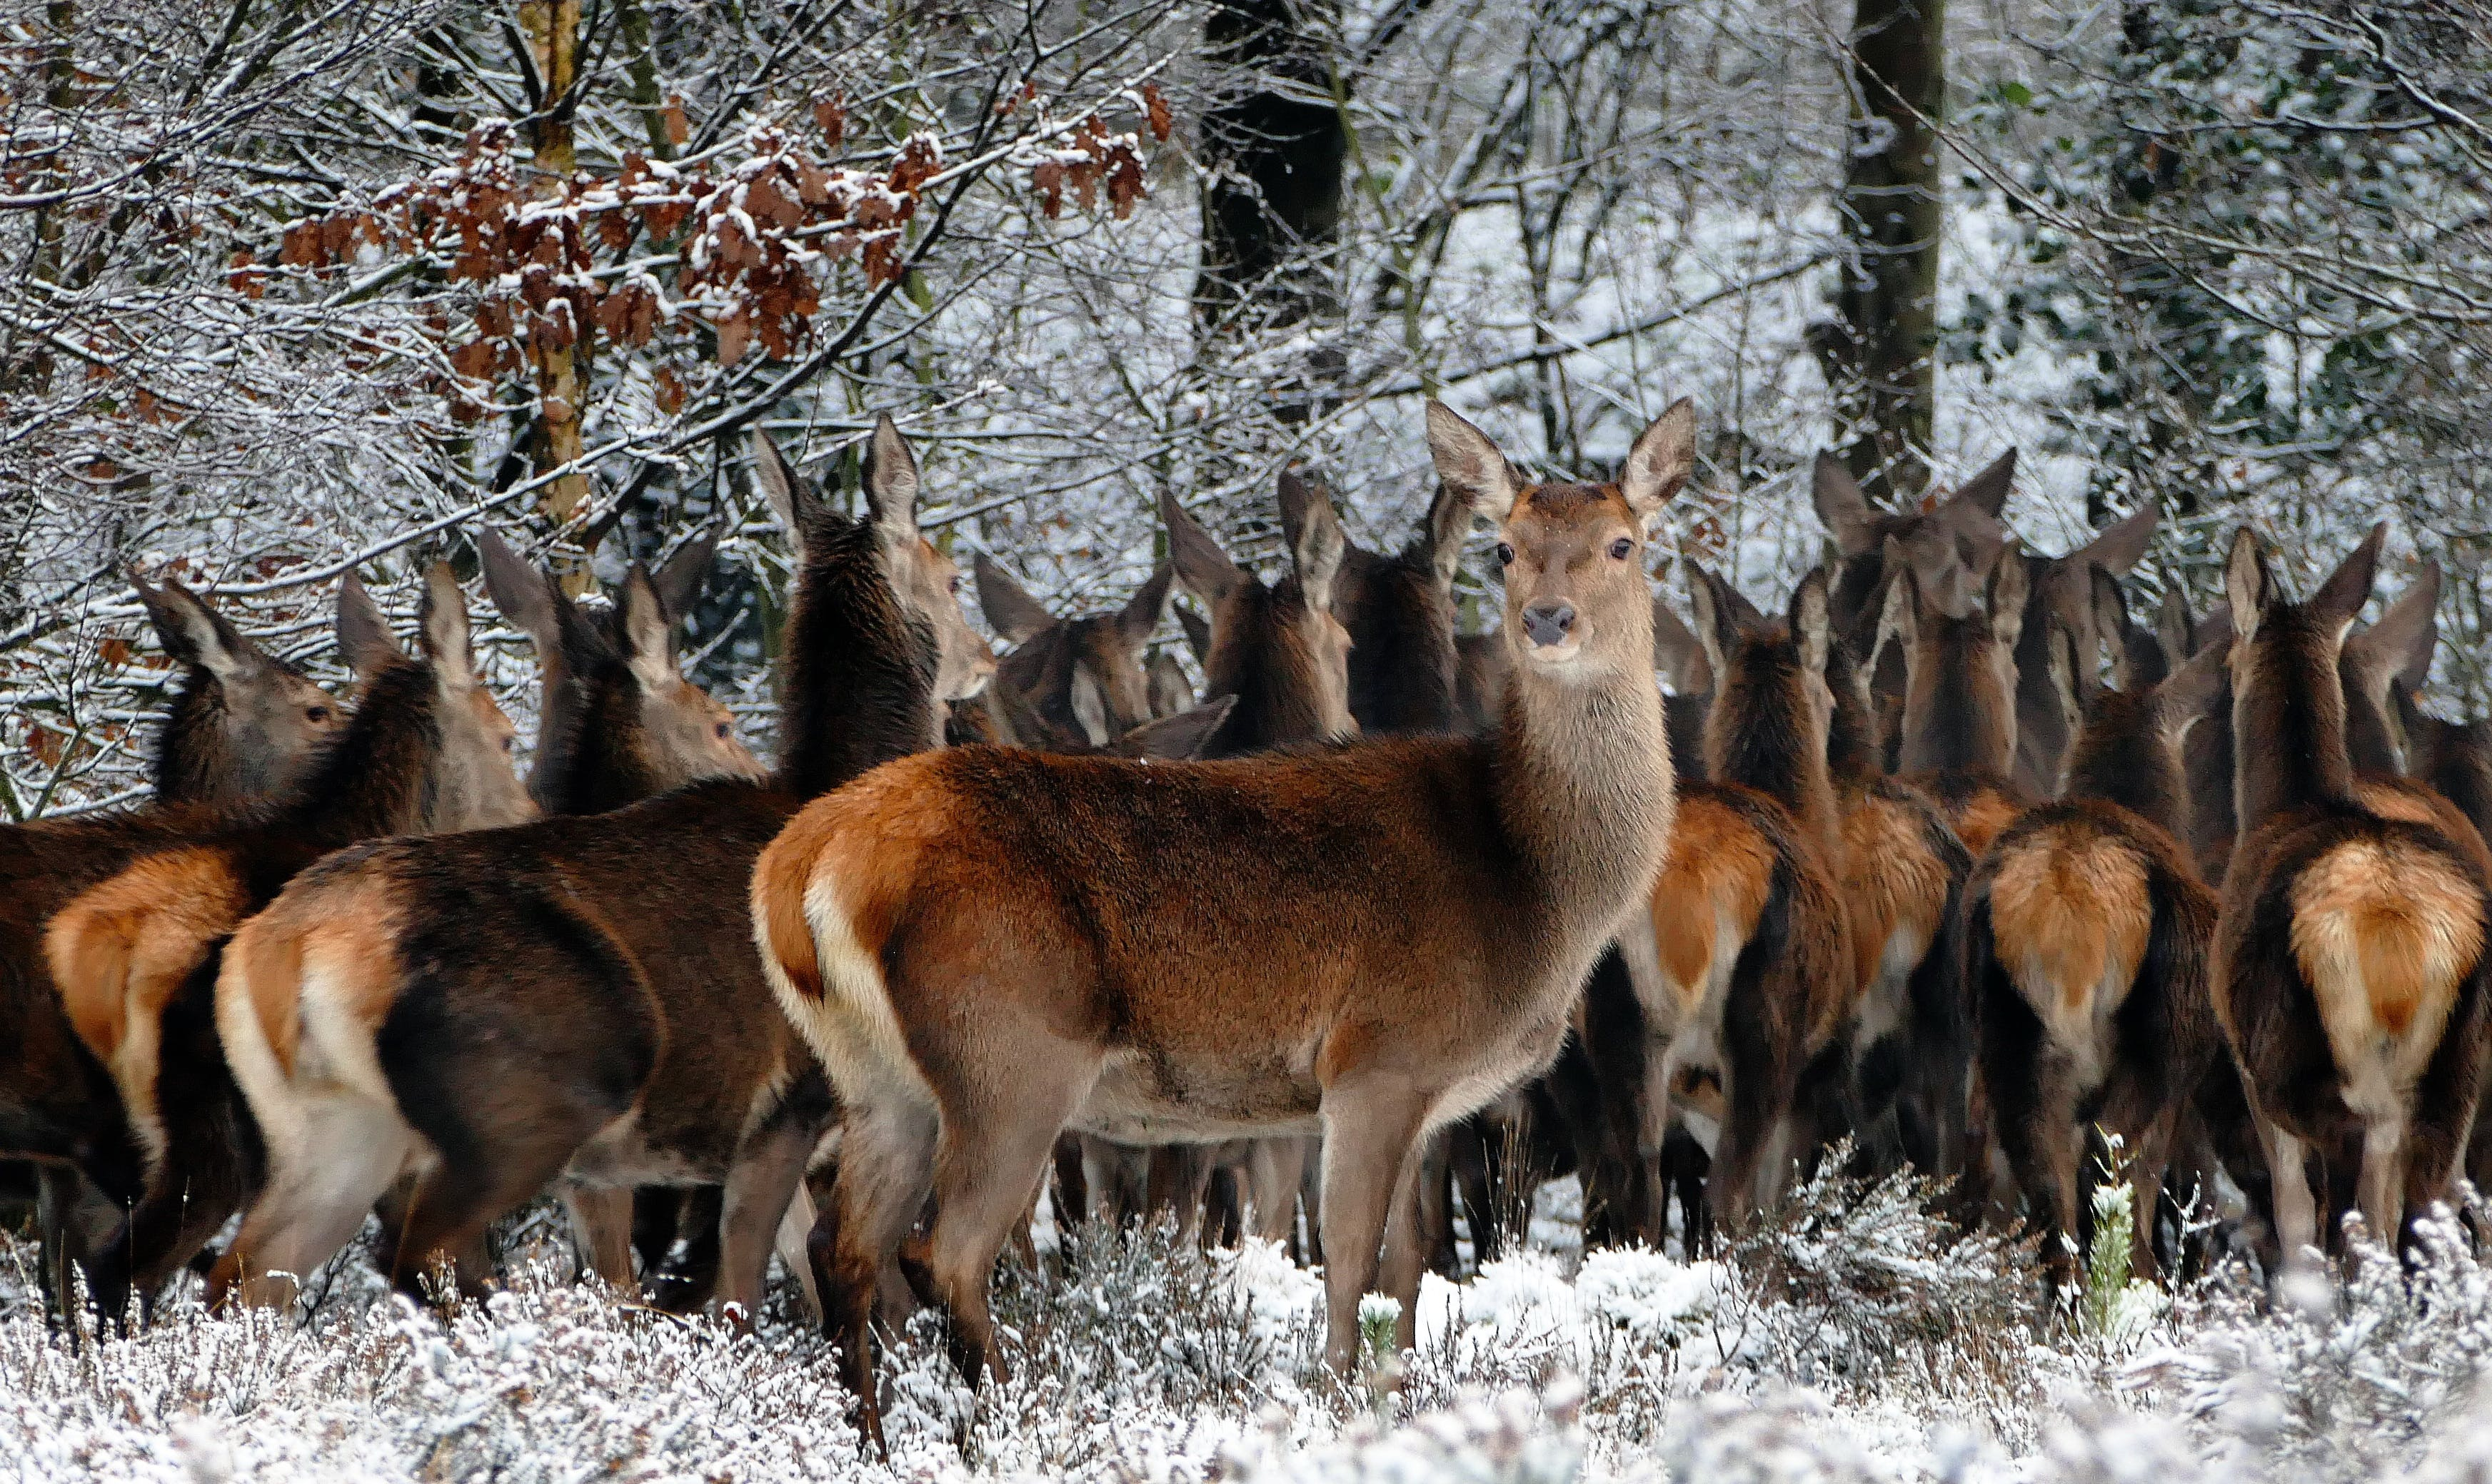 Herd of Deer on Forest